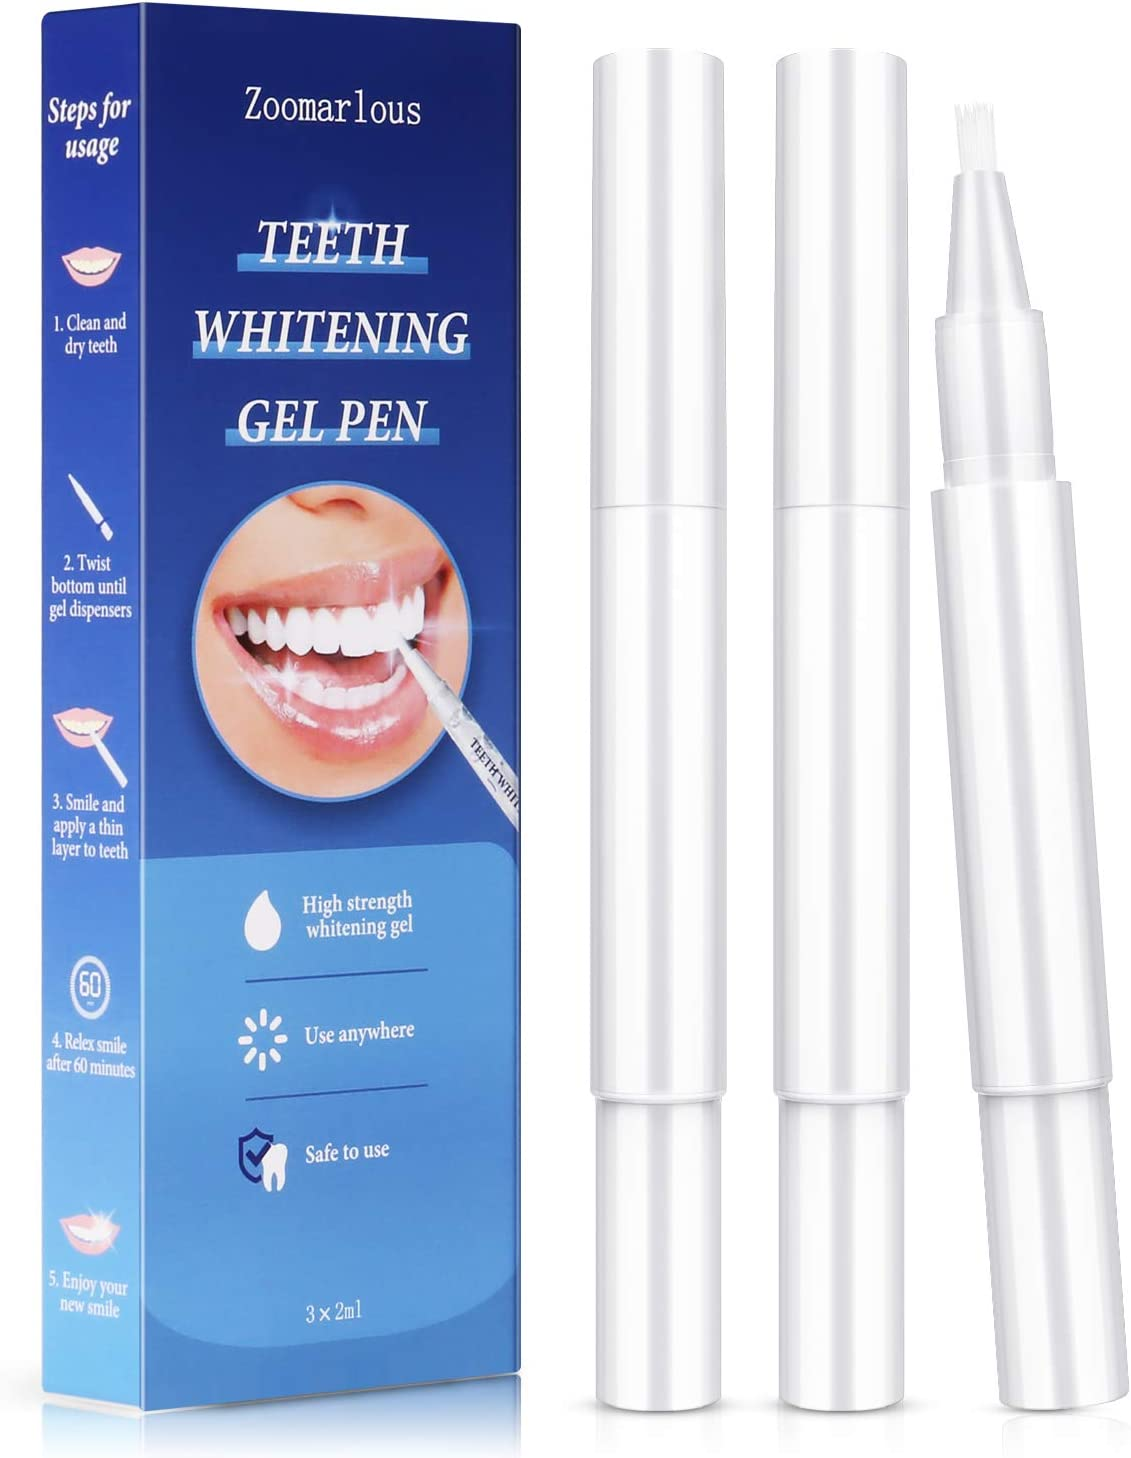 Zoomarlous Teeth Whitening Pen 3 Pack - 30+ Uses Whitening Treatments, 35% Carbamide Peroxide, No Sensitivity, Remove Coffee and Tea Stains Professional Dental Whitener, Beautiful White Smile, 3x2 ml: Health & Personal Care